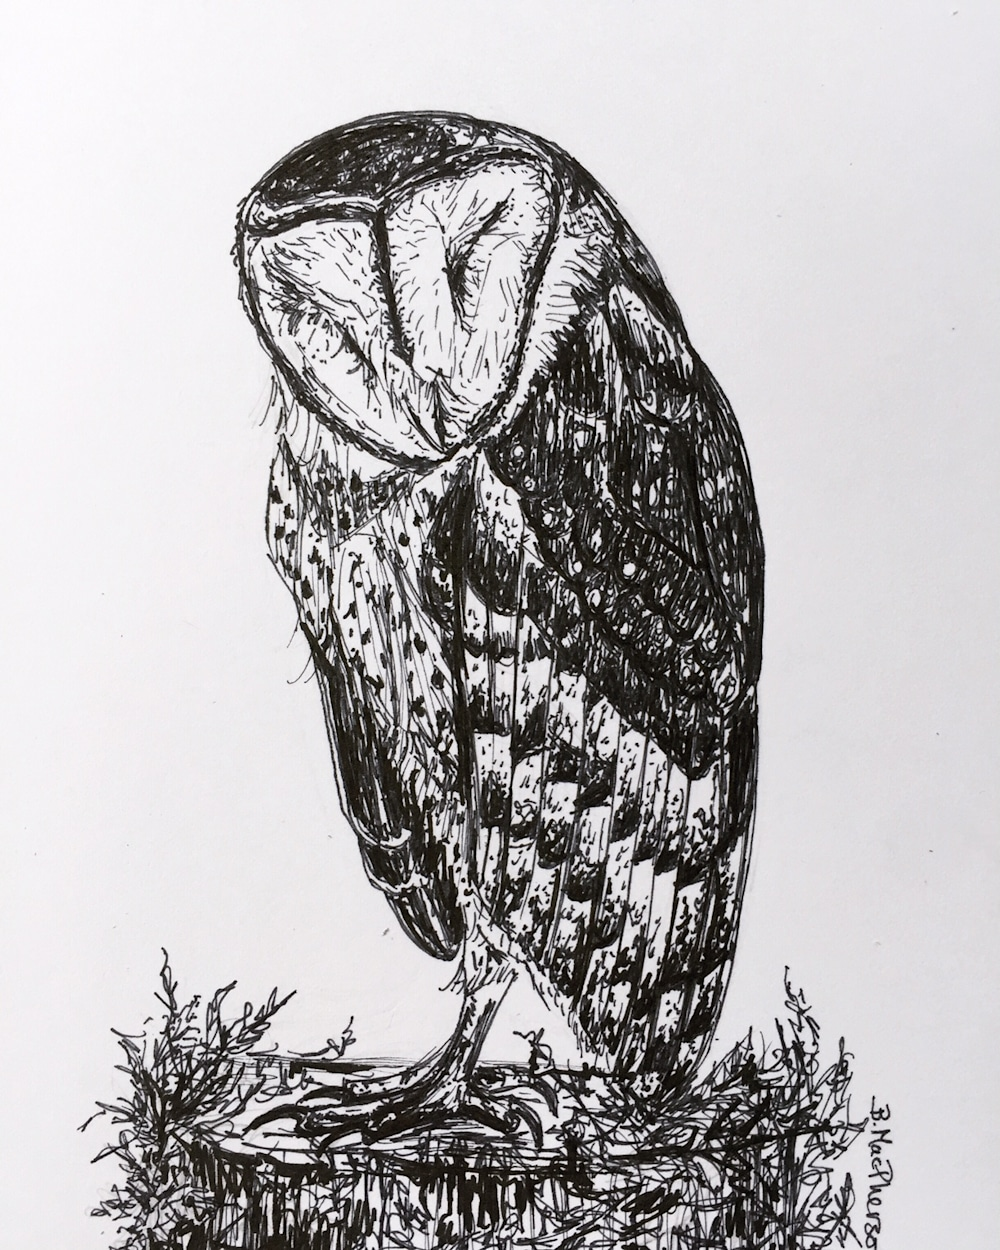 Dreaming Barn Owl Pen and Ink Illustration by Becky MacPherson